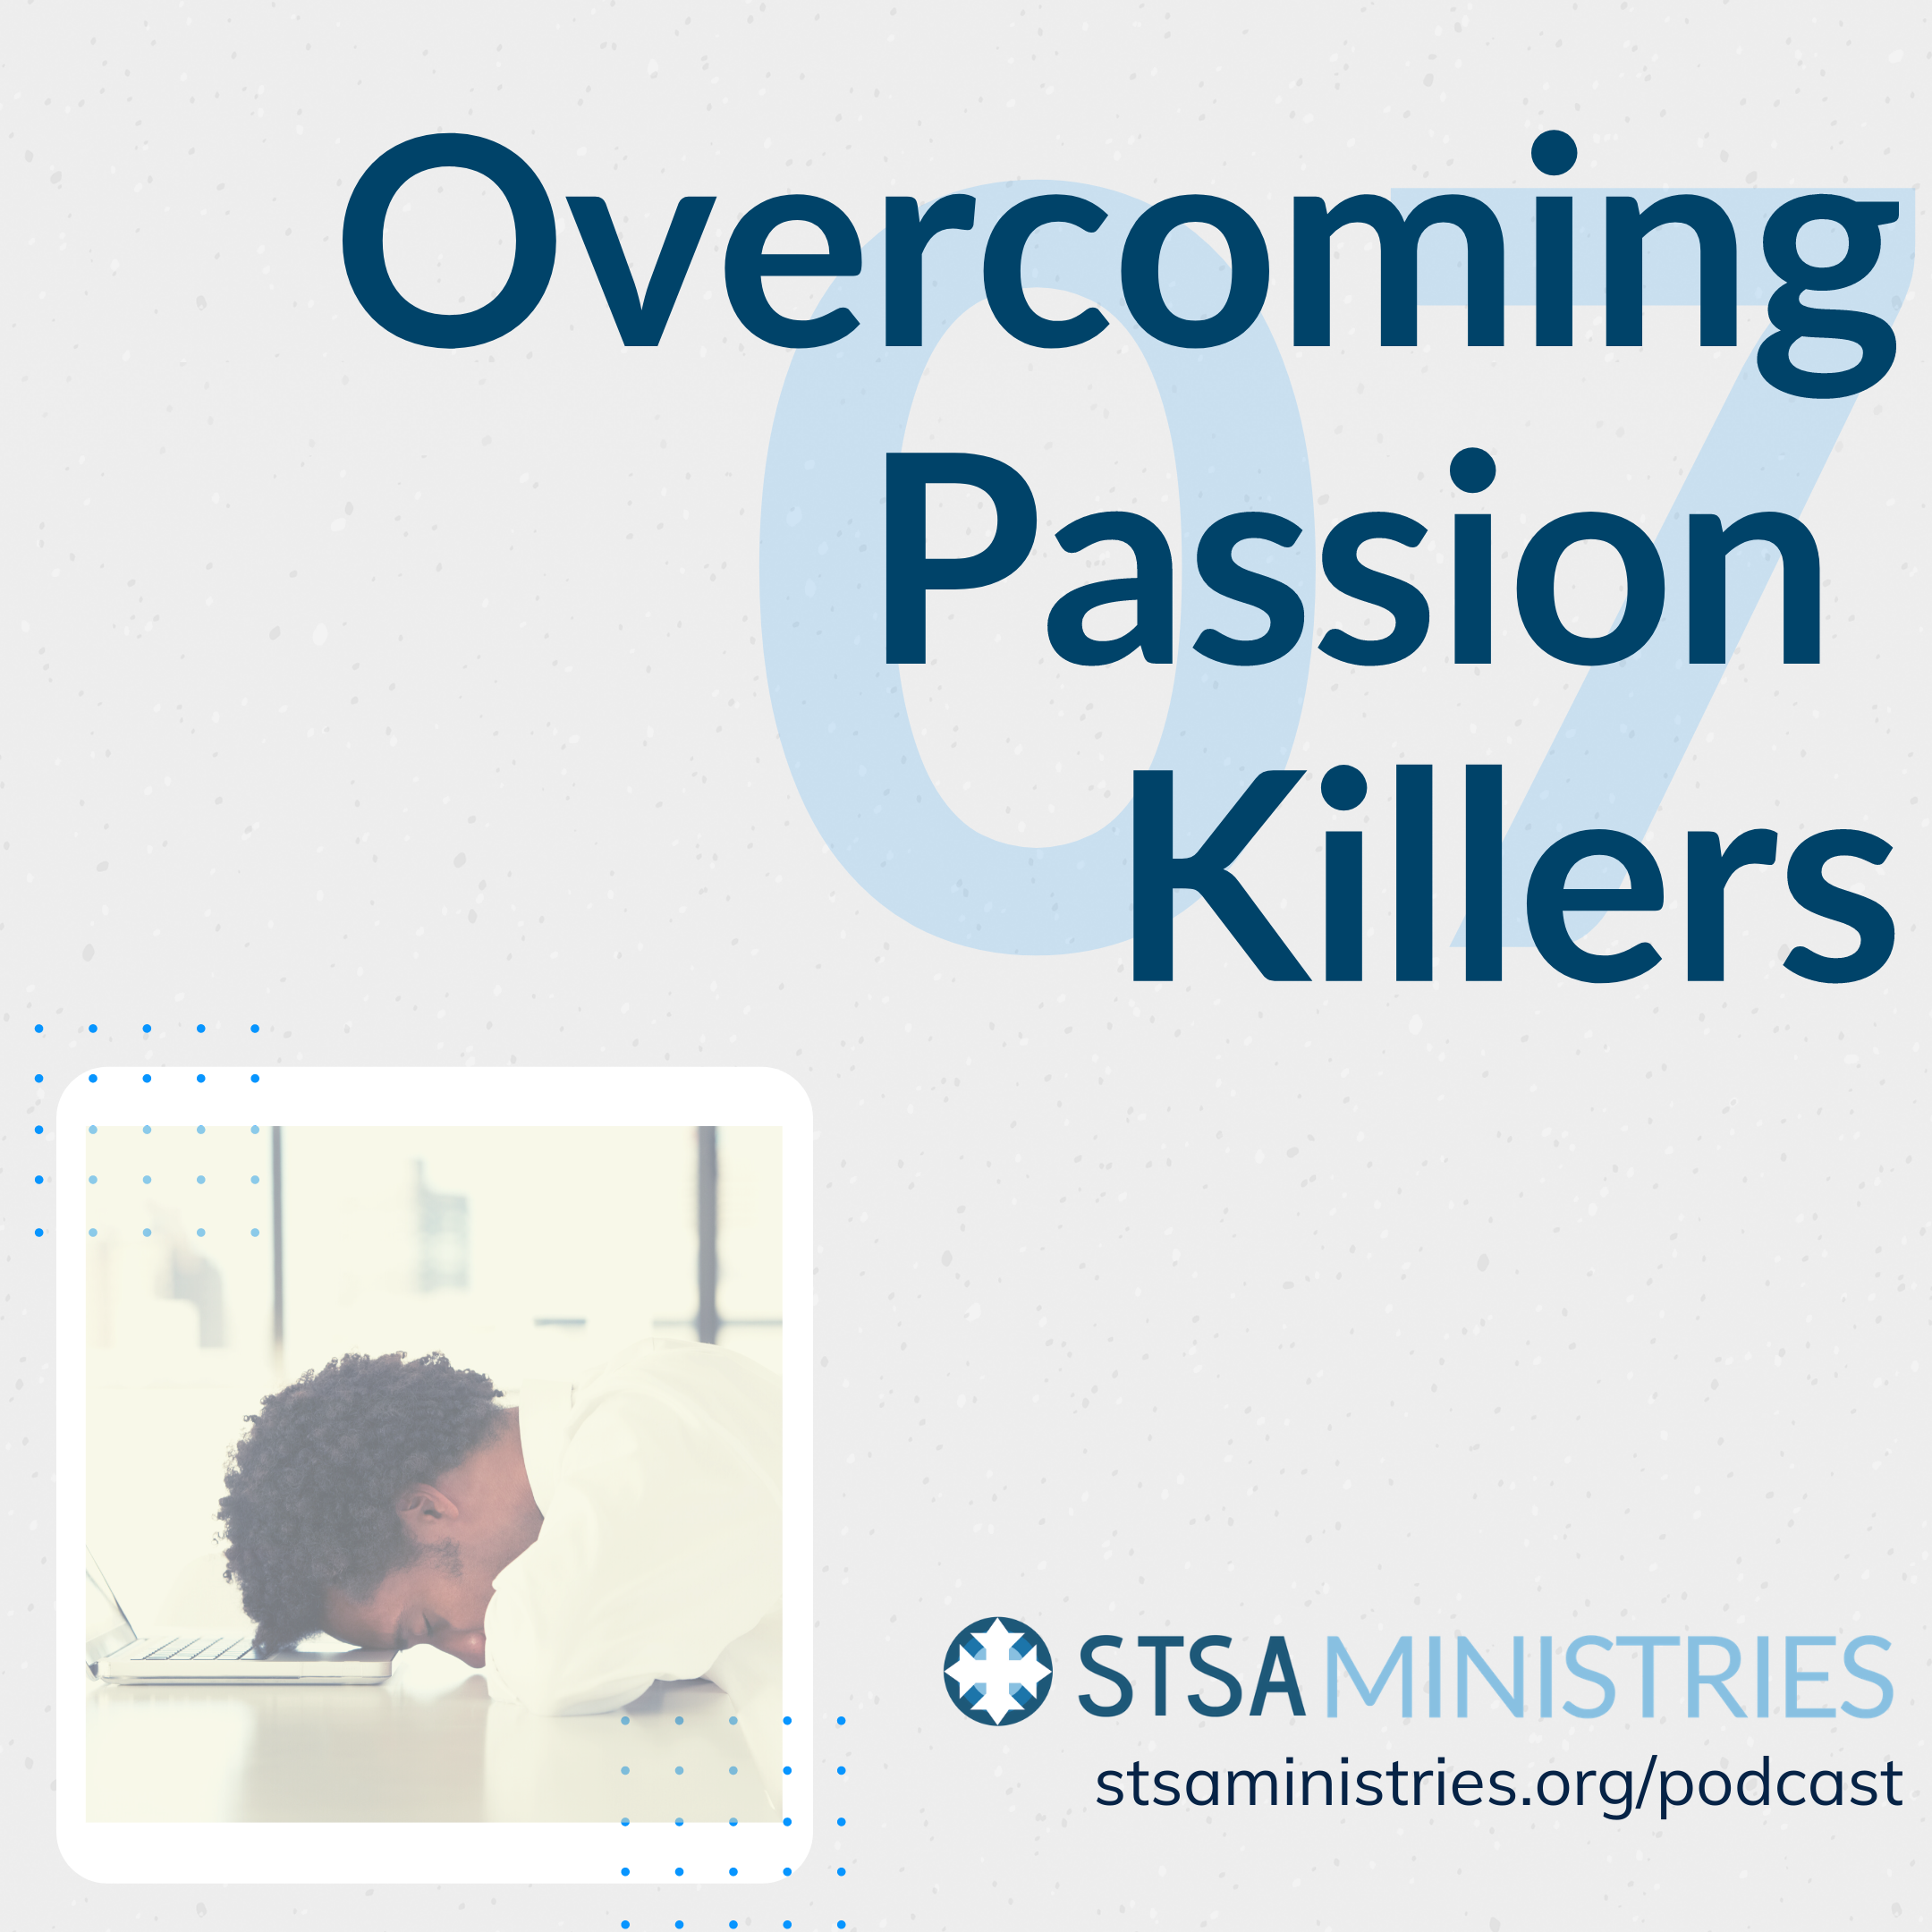 Overcoming Passion Killers